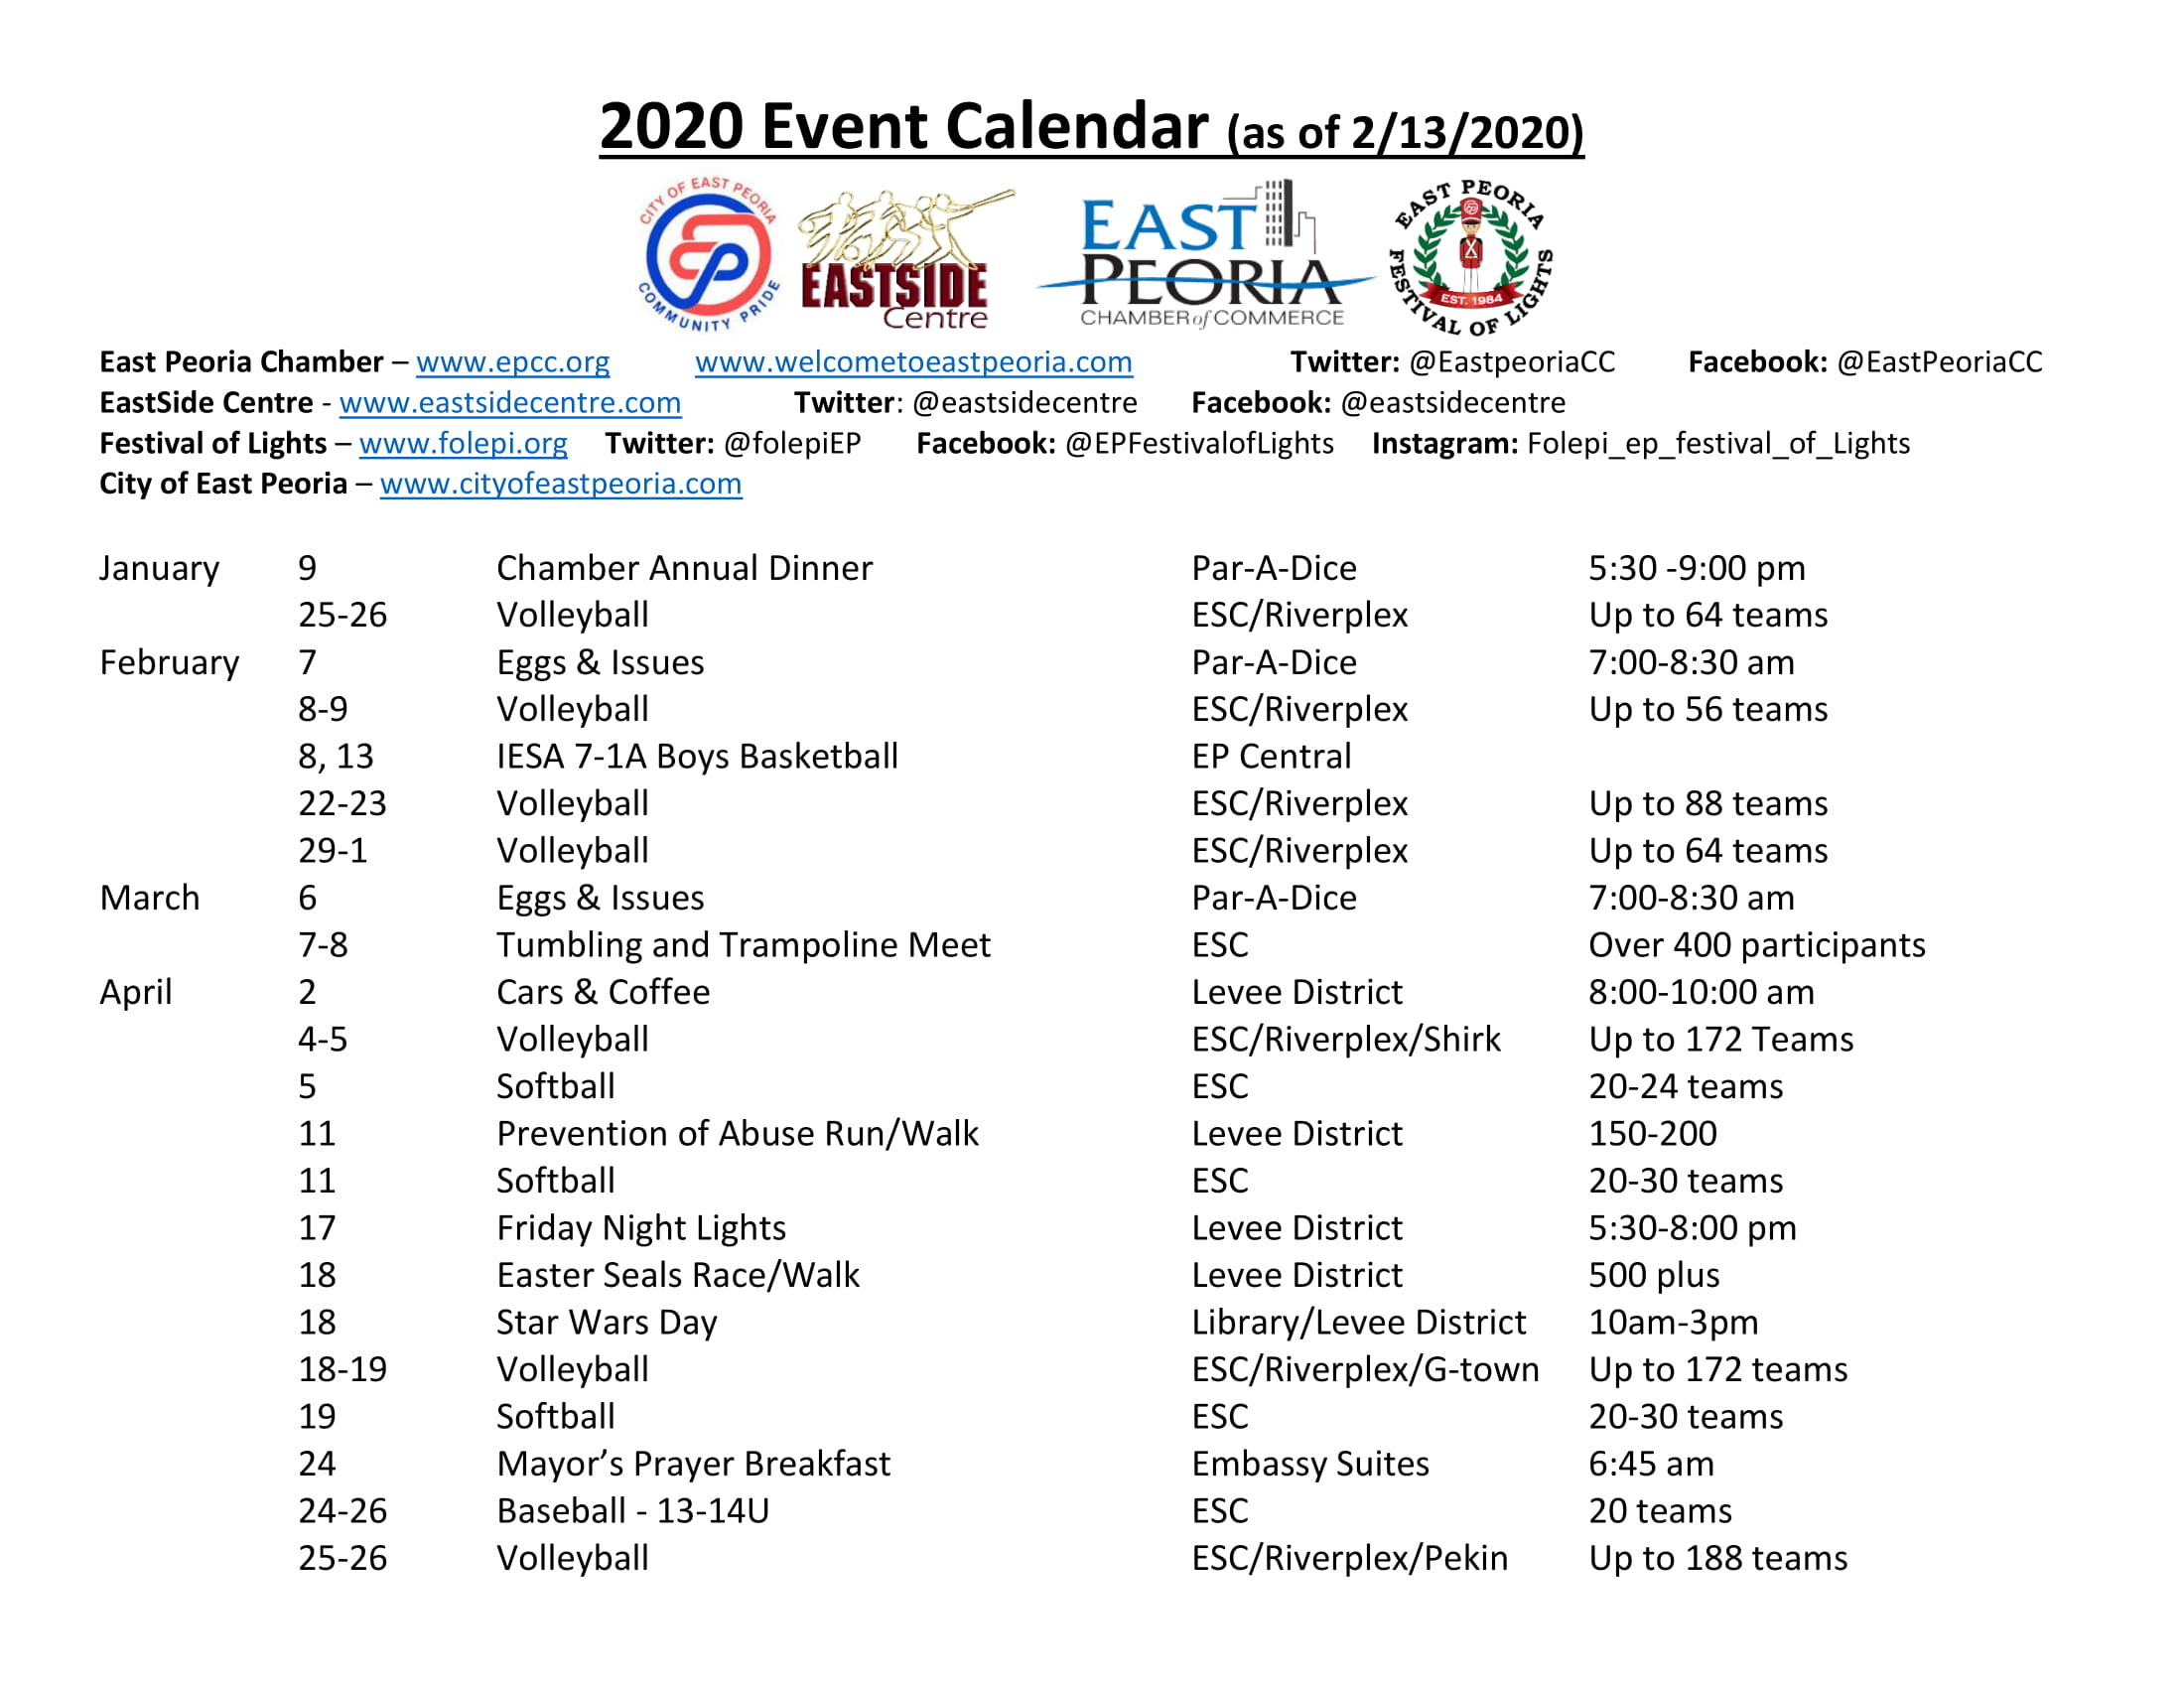 2020 Events as of Feb 13 2020-1